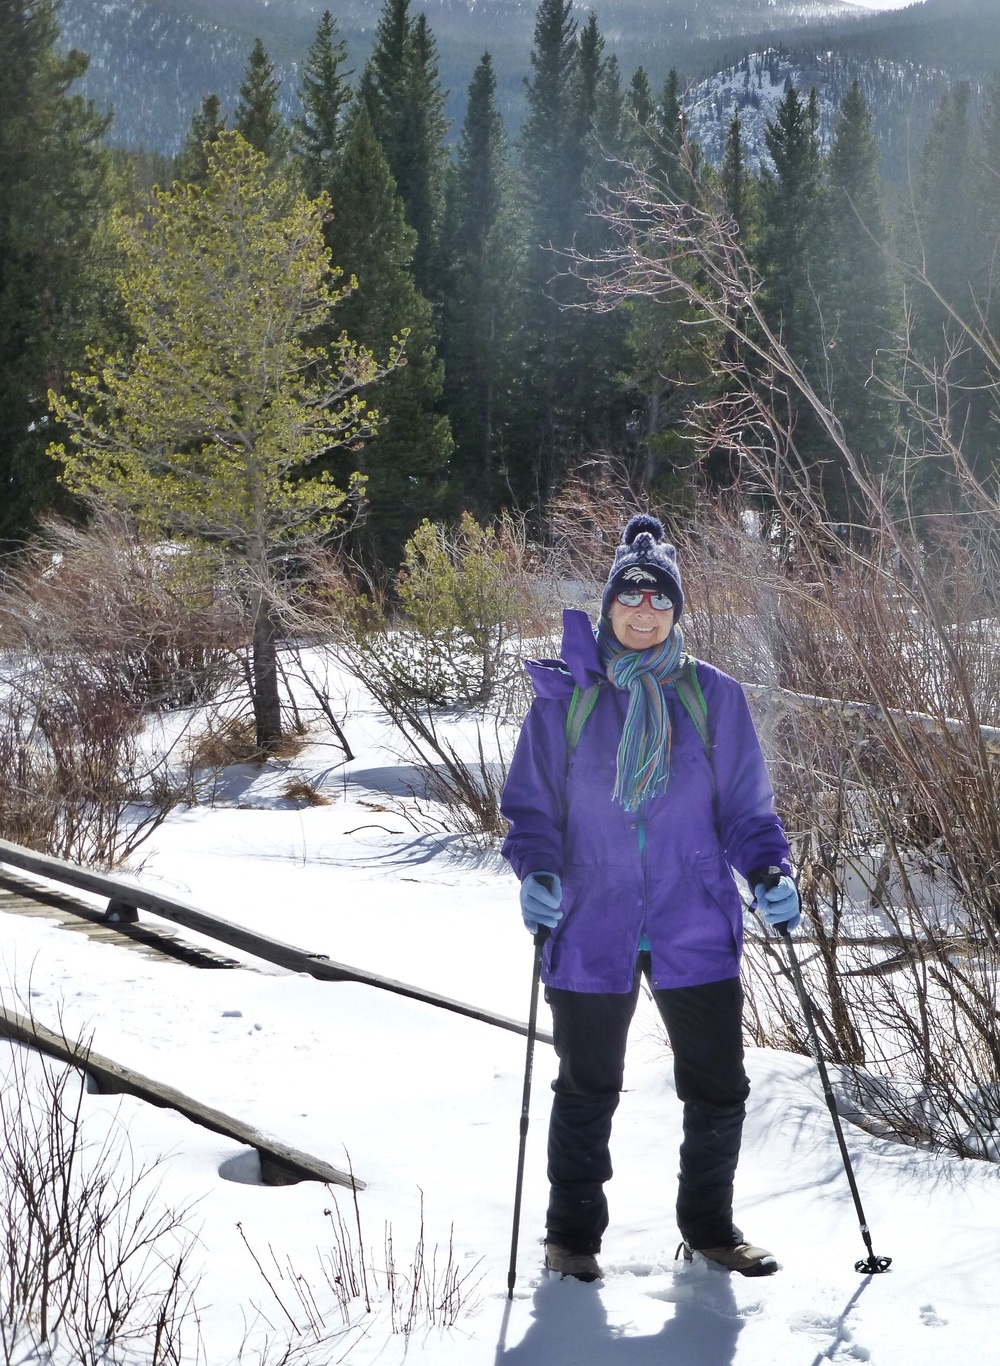 Hiking through the snow at Sprague Lake